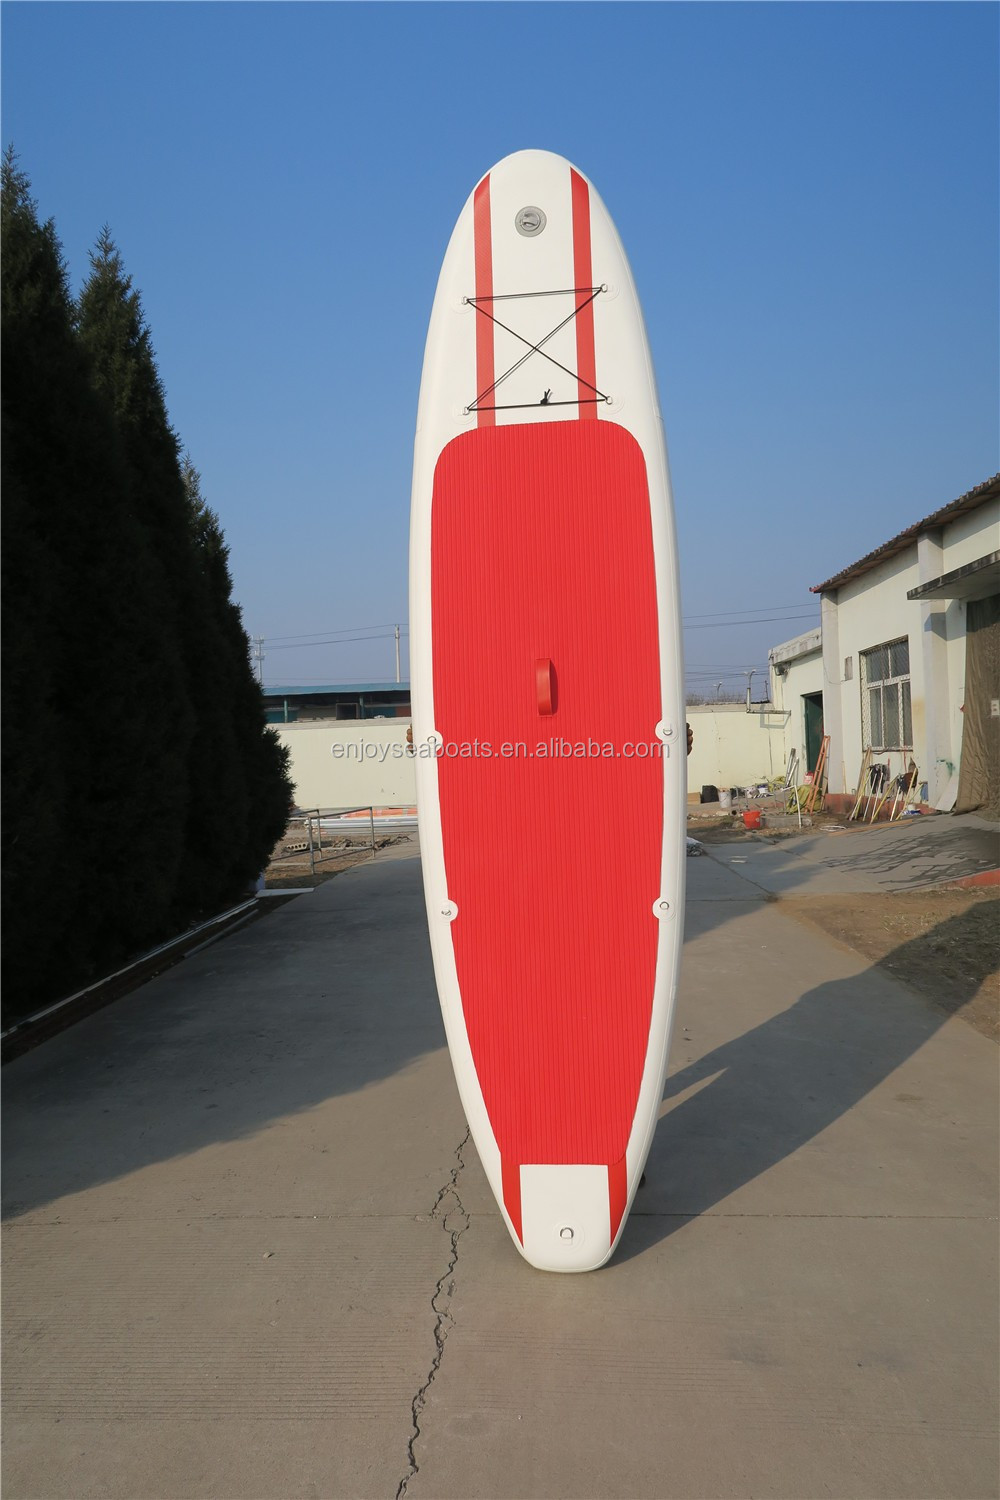 Popular custome design inflatable sup paddle board/standup paddleboard/big sup!